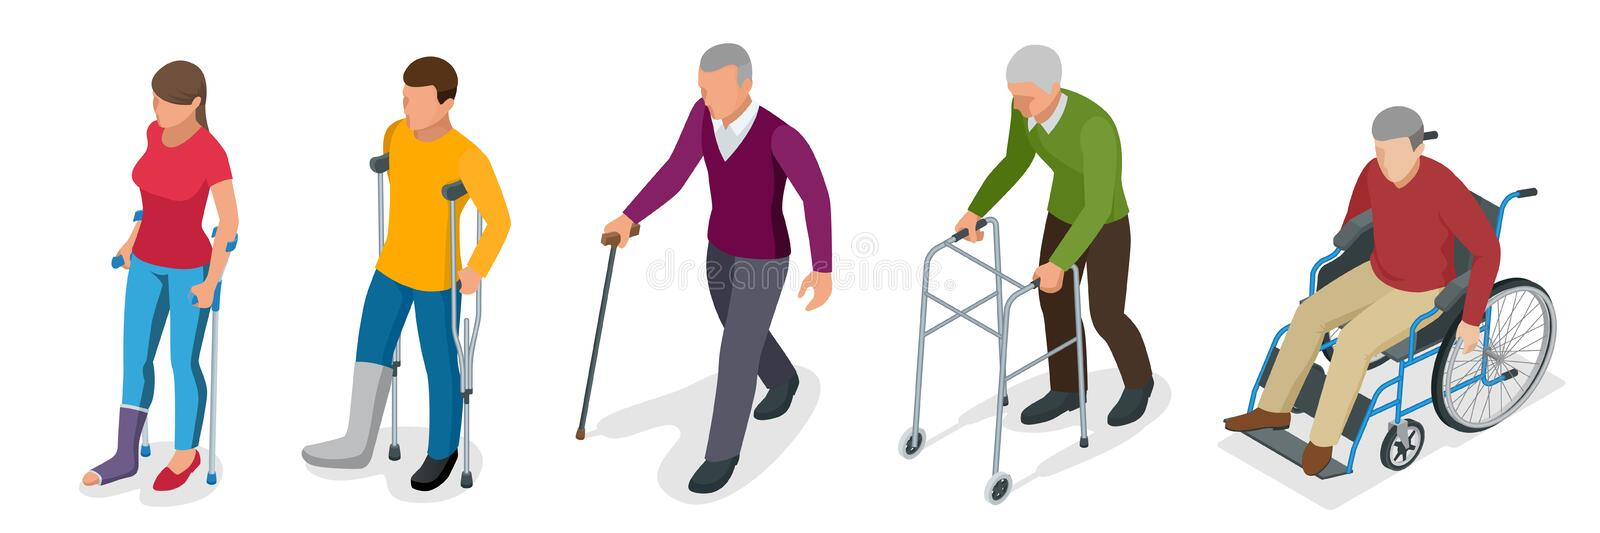 Fracture of leg or leg injury. Young and old people in a gyse with crutches, a wheelchair. Rehabilitation after trauma. Orthopedics and medicine. Flat 3d vector illustration